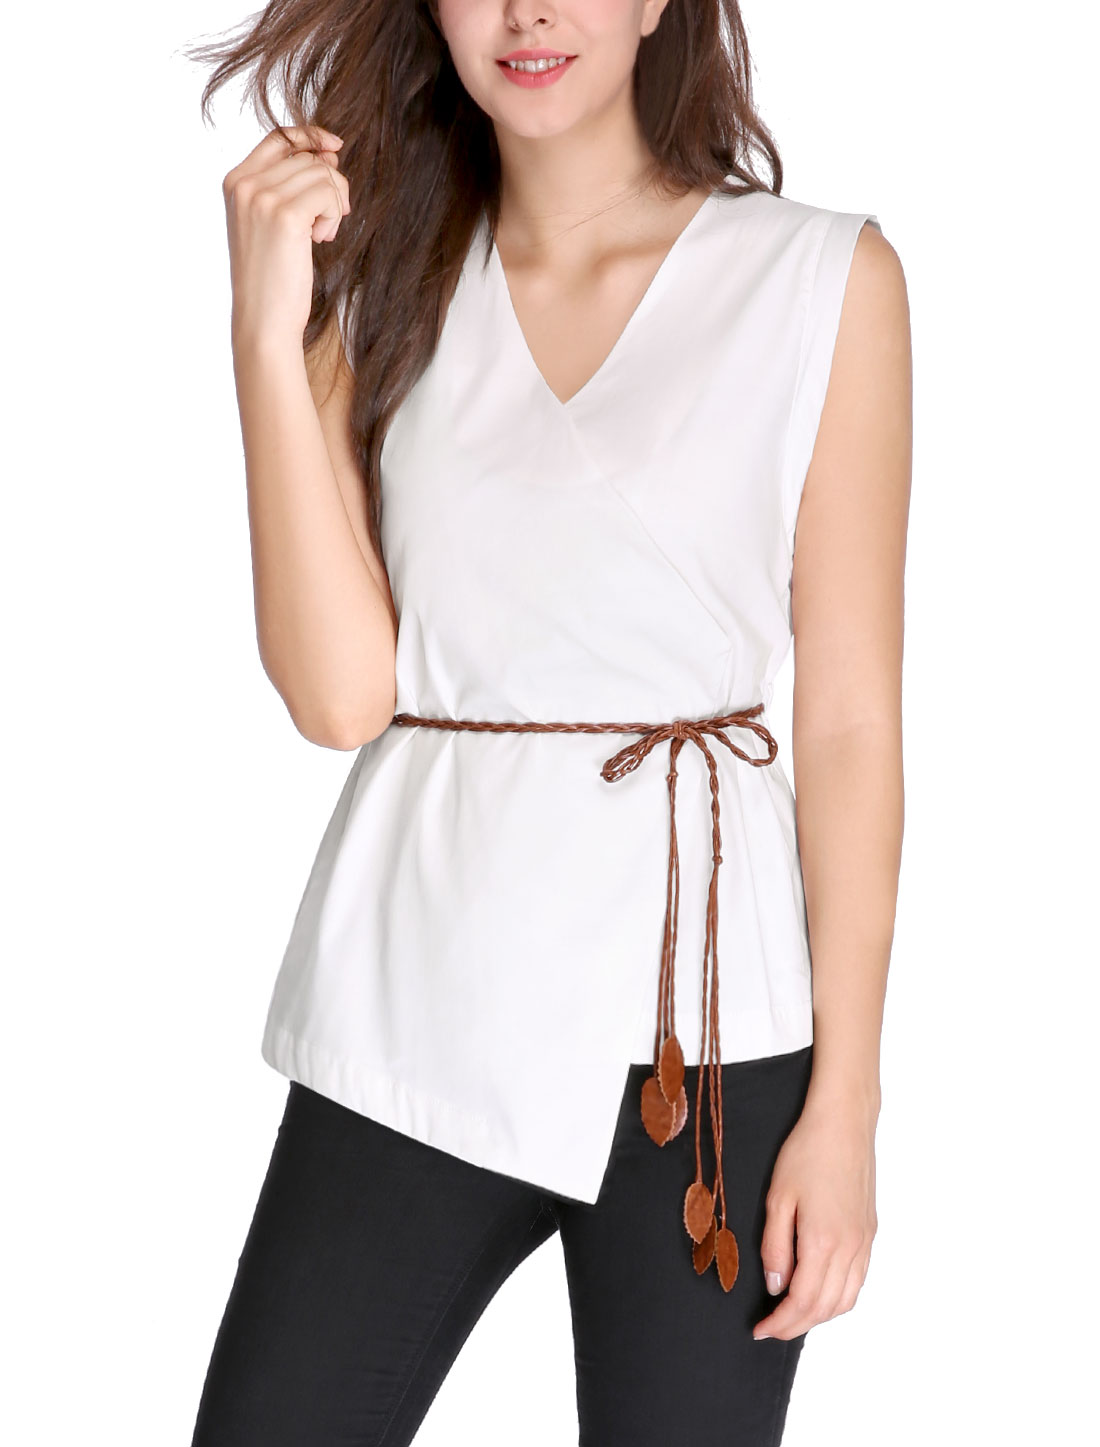 Women V Neck Asymmetric Wrap Front Belted Sleeveless Top White M